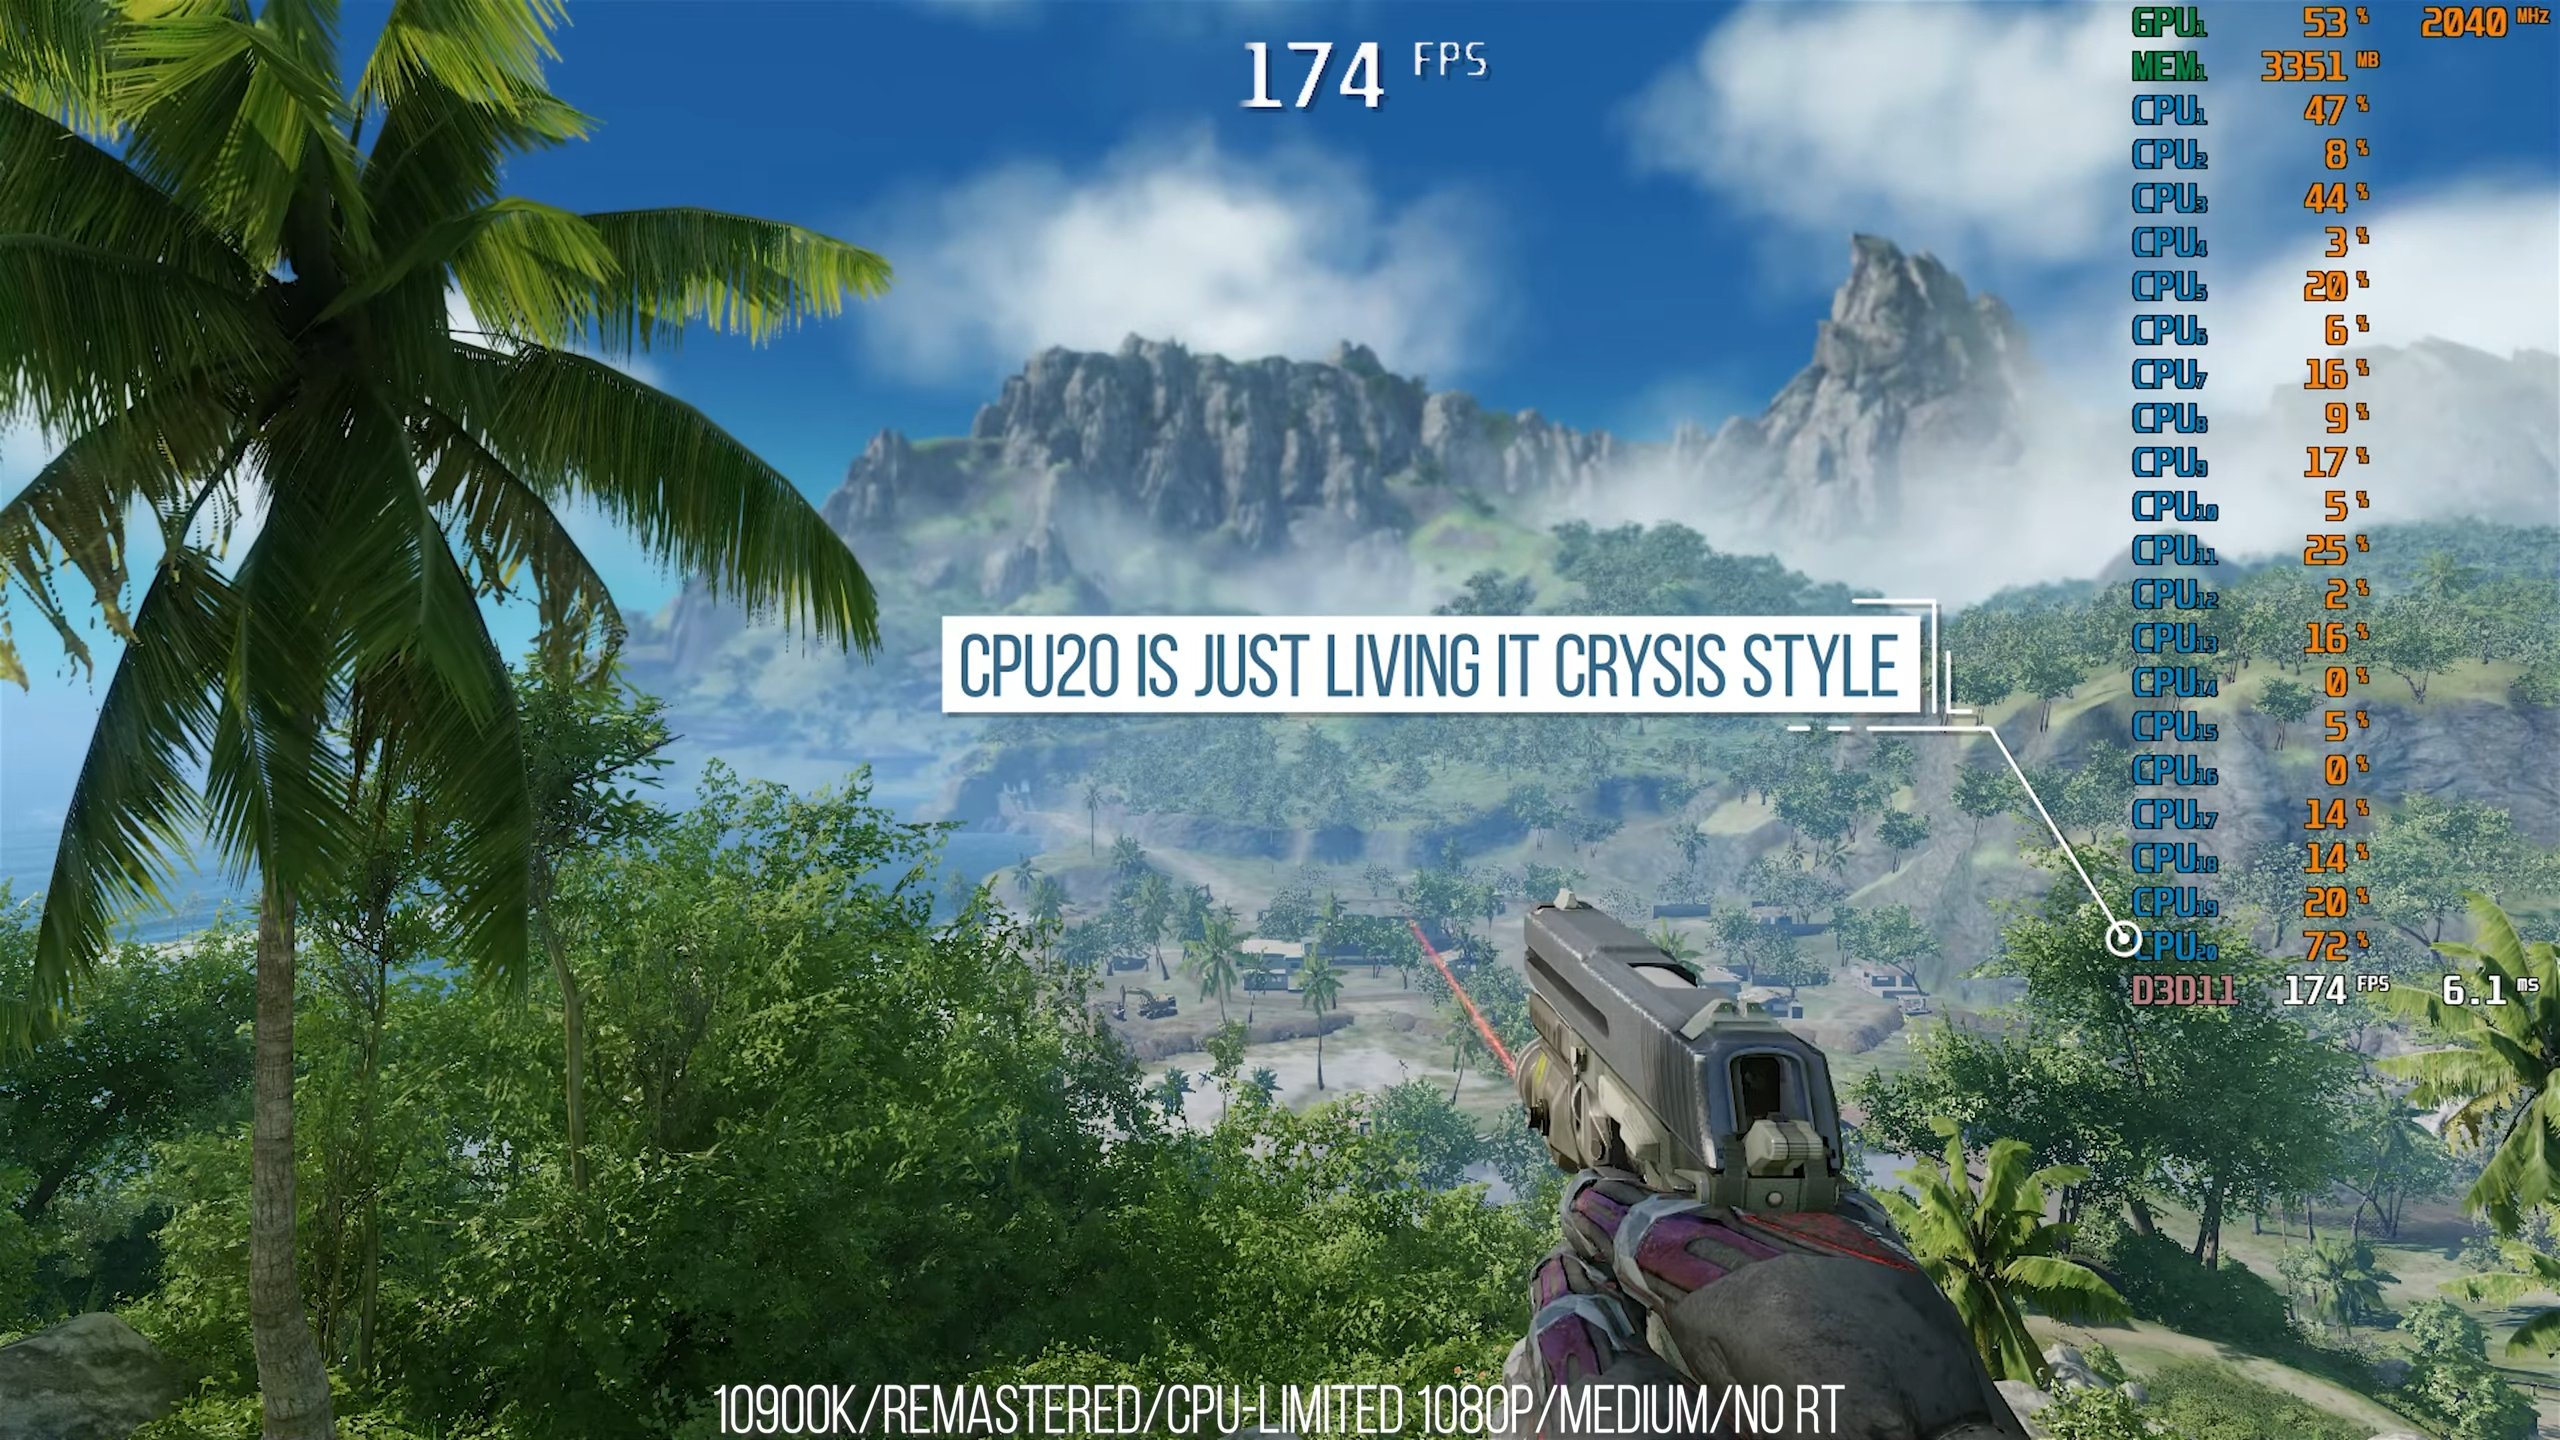 133137-Crysis%20Remastered%20PC%20Review